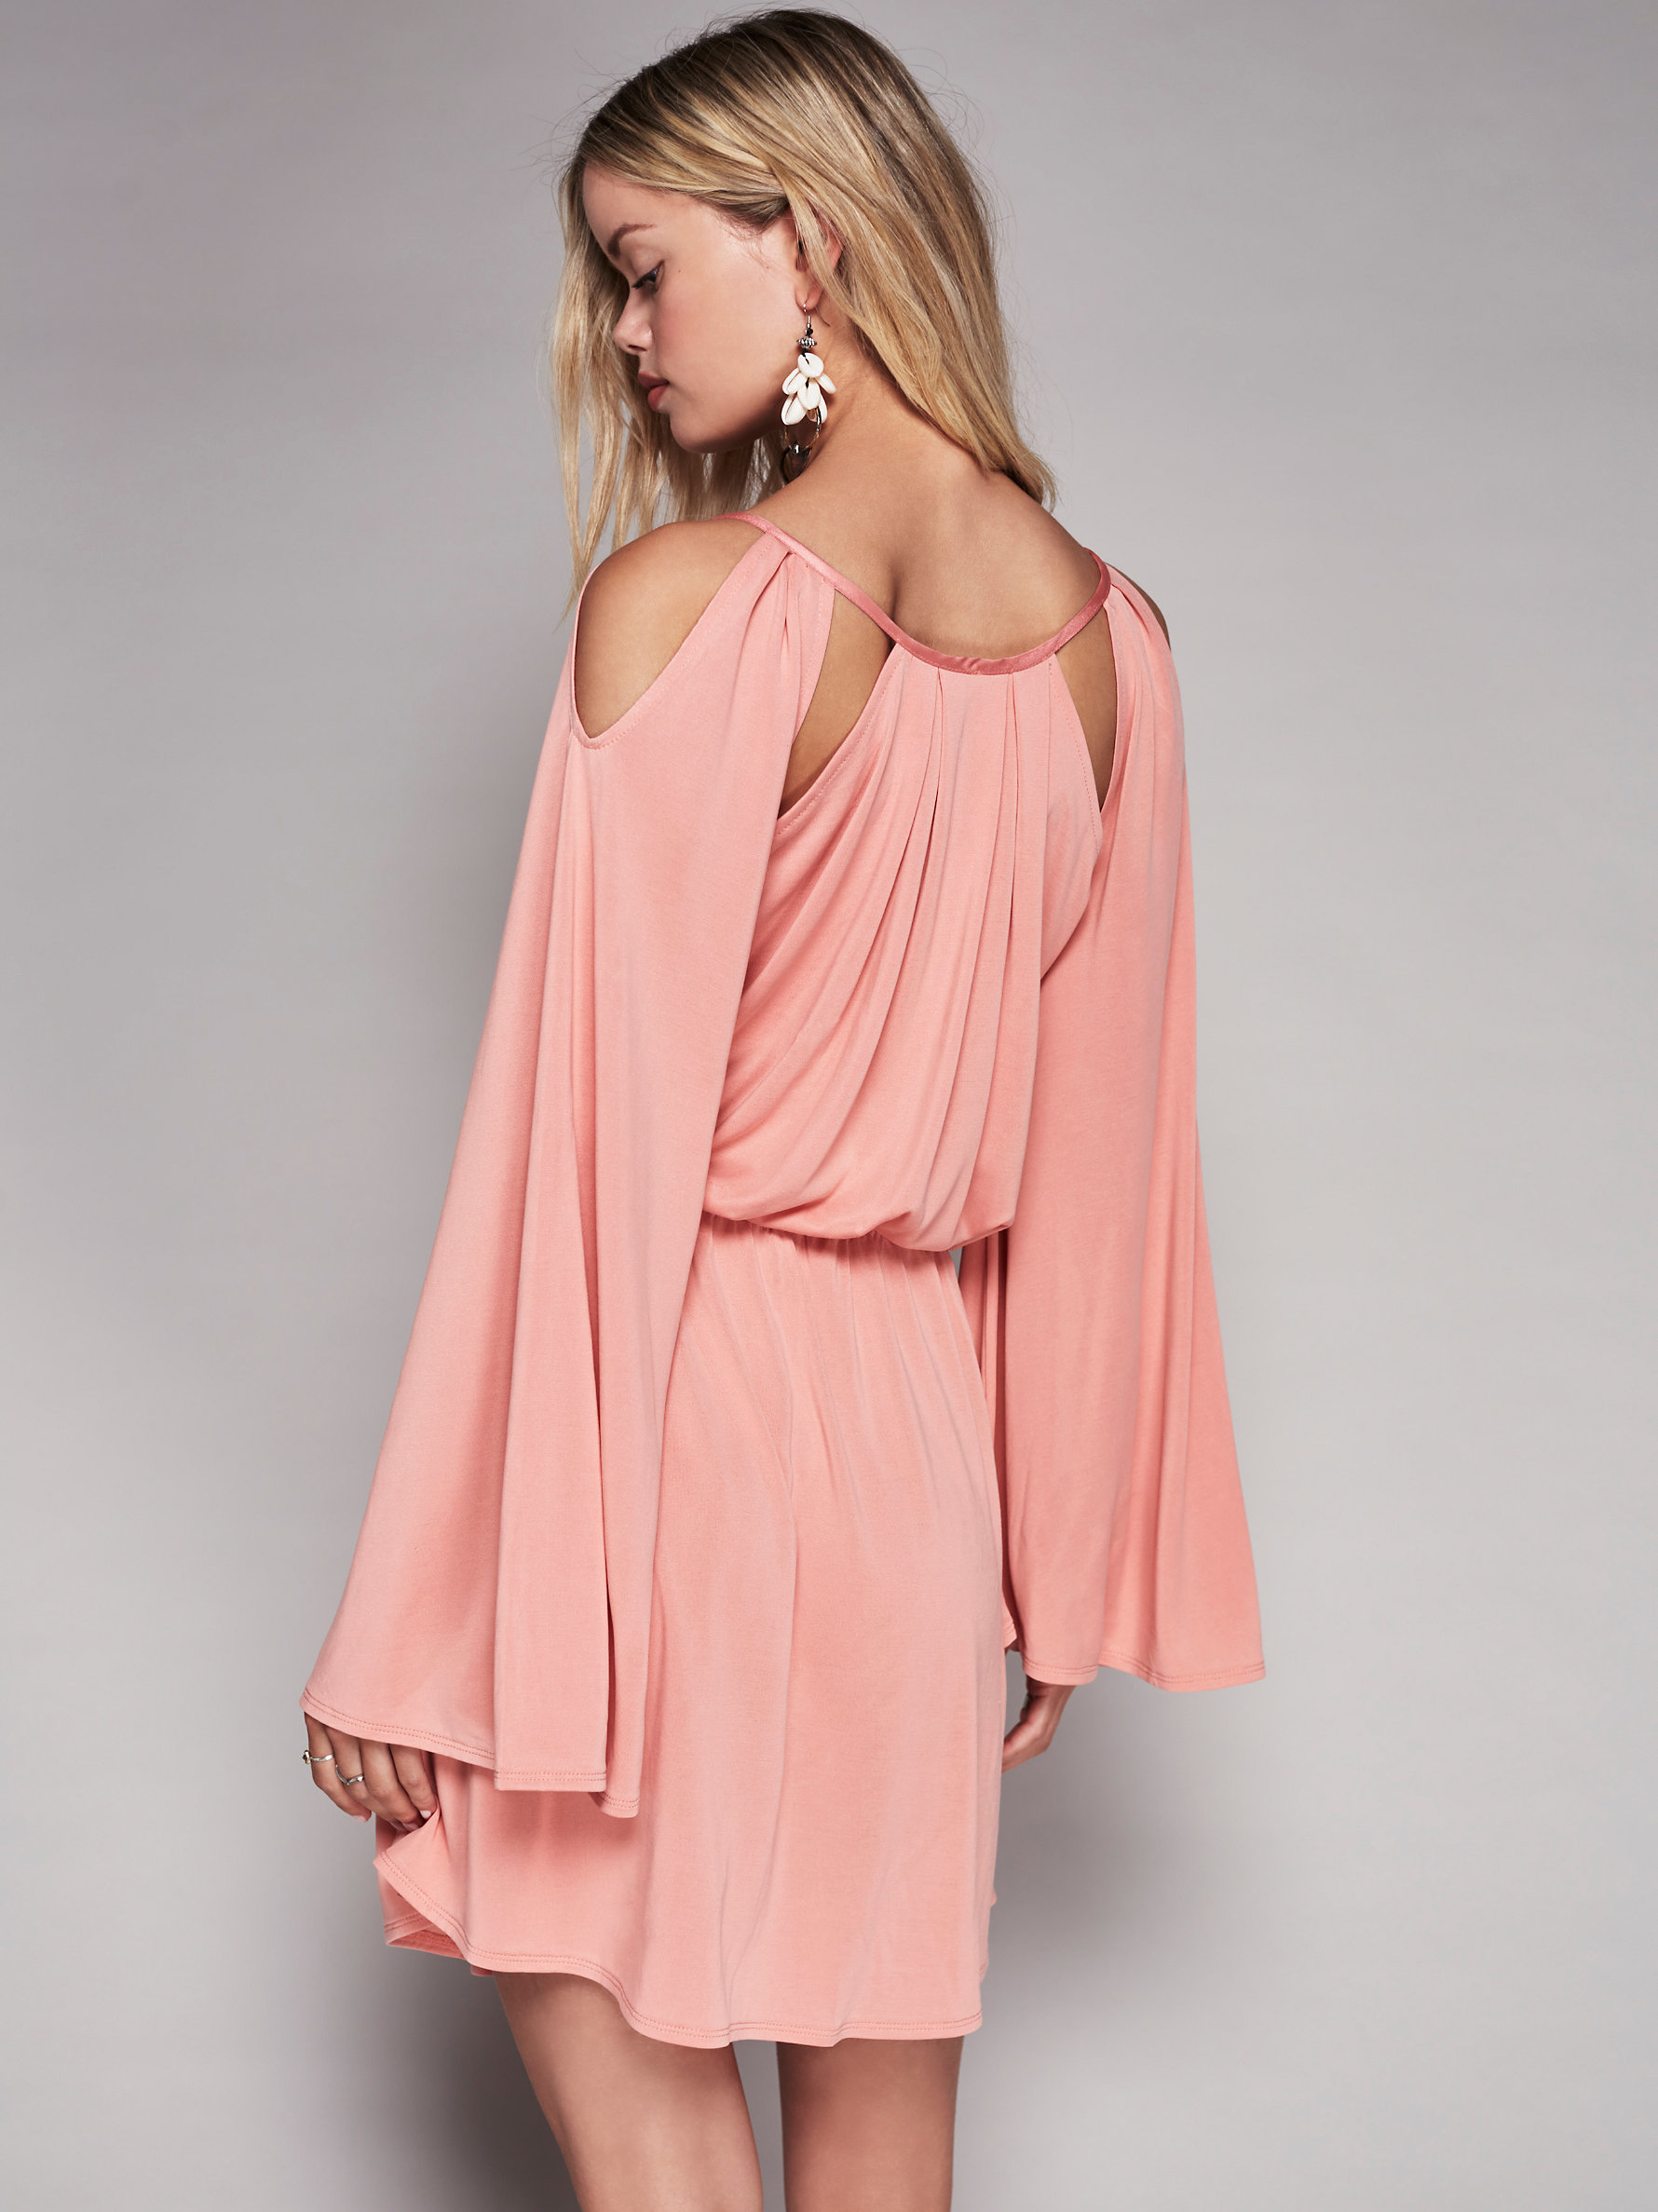 e221a03f5c4 Free People The High Road Mini in Pink - Lyst